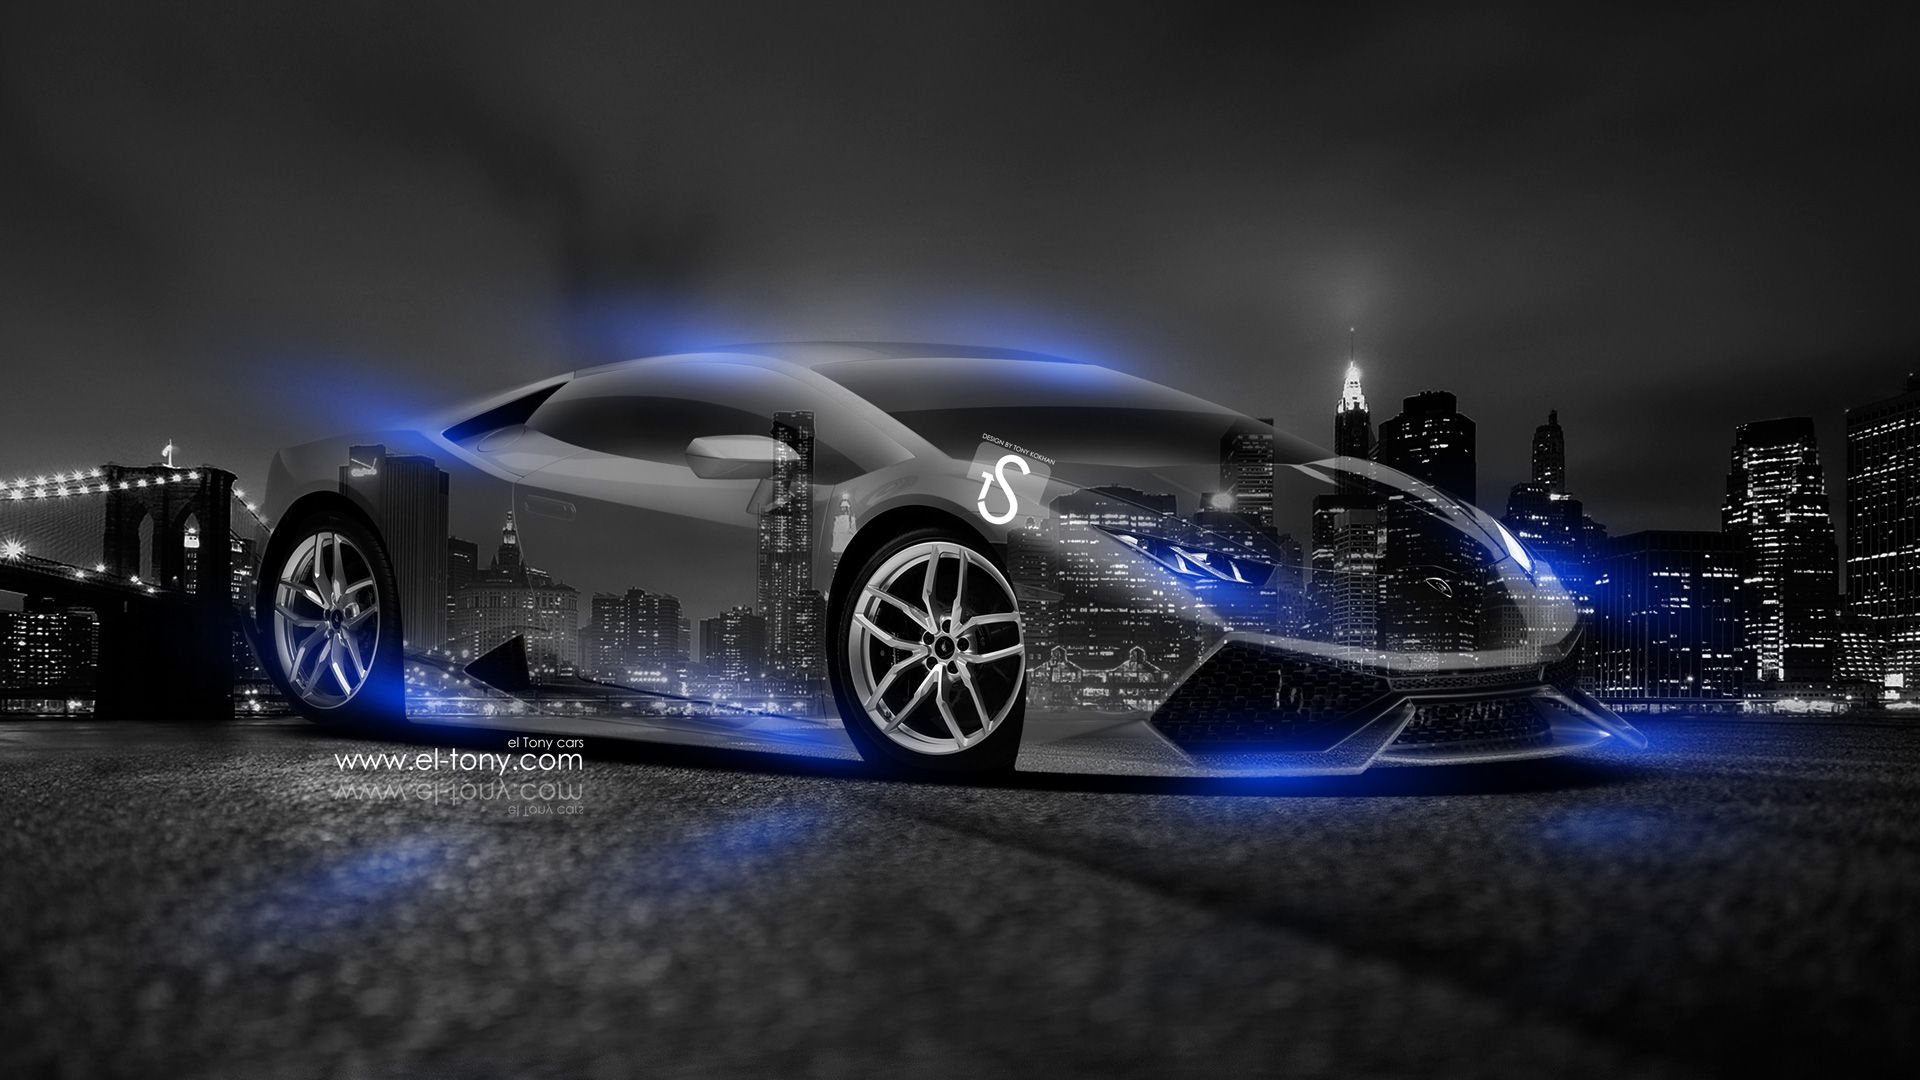 Marvelous Bon Black Lamborghini With Neon Blue Lights | Lamborghini Huracan Crystal  City Car